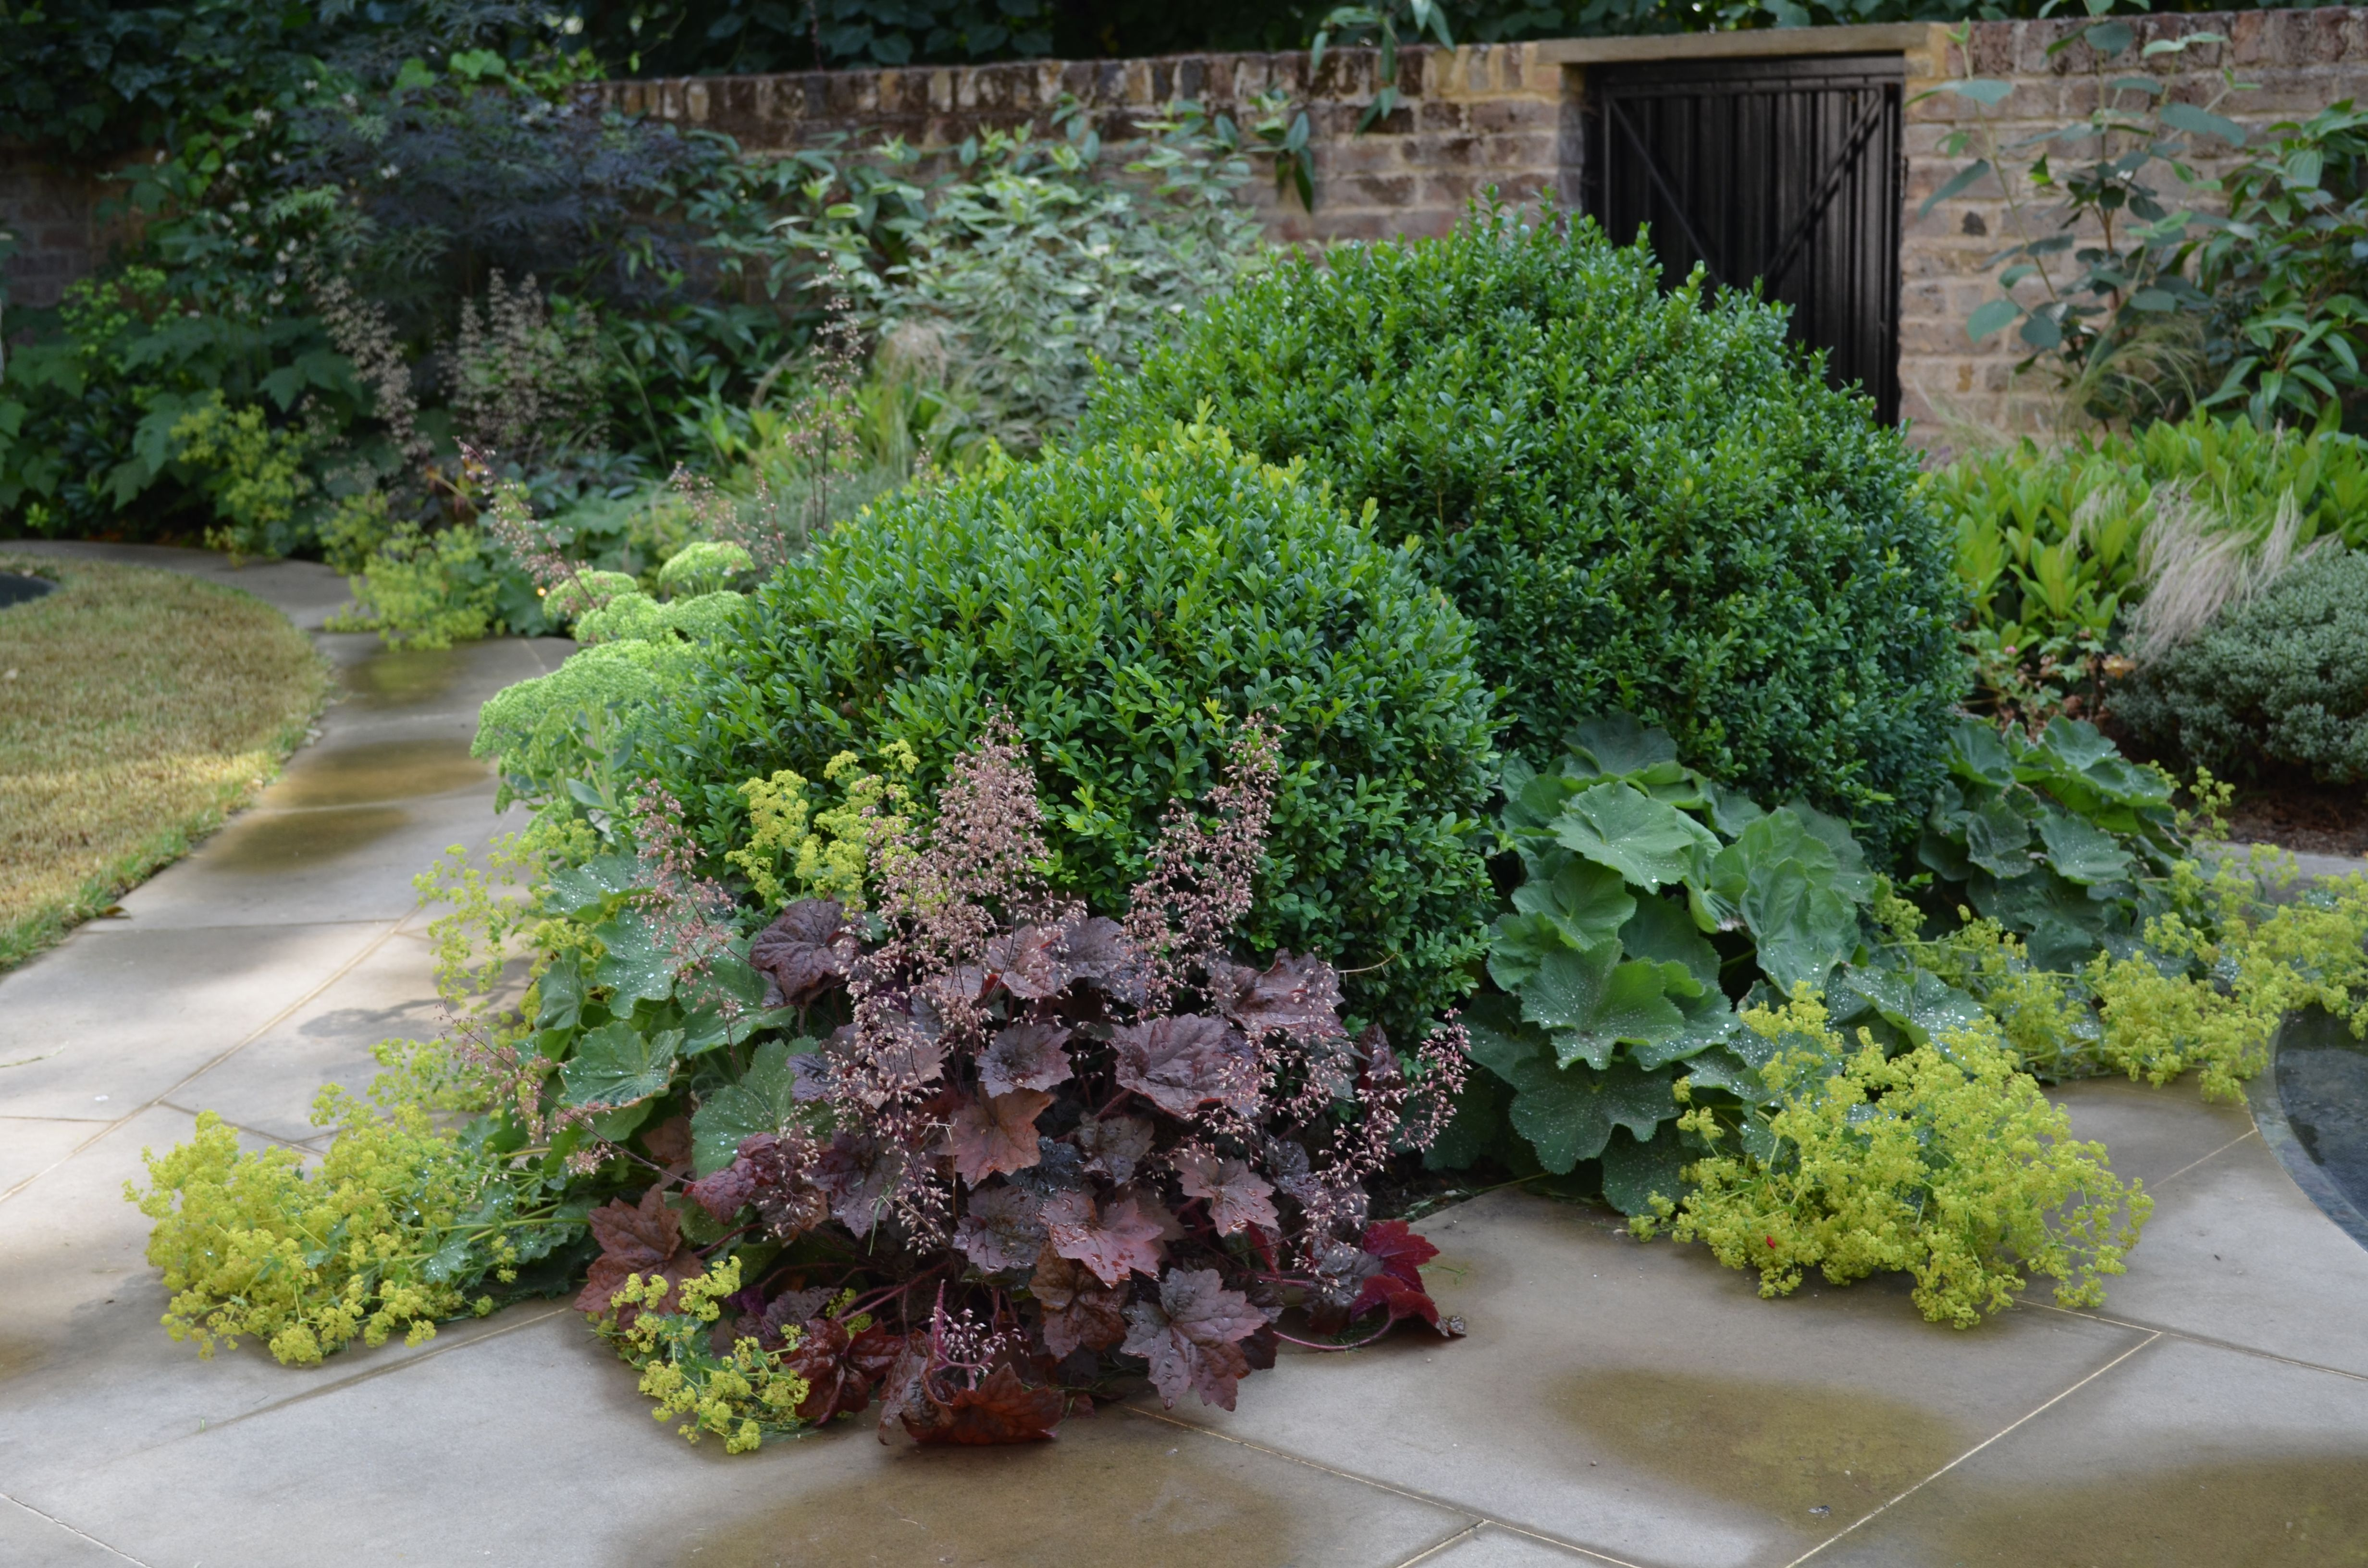 knightsbridge garden with large buxus balls underplanted with